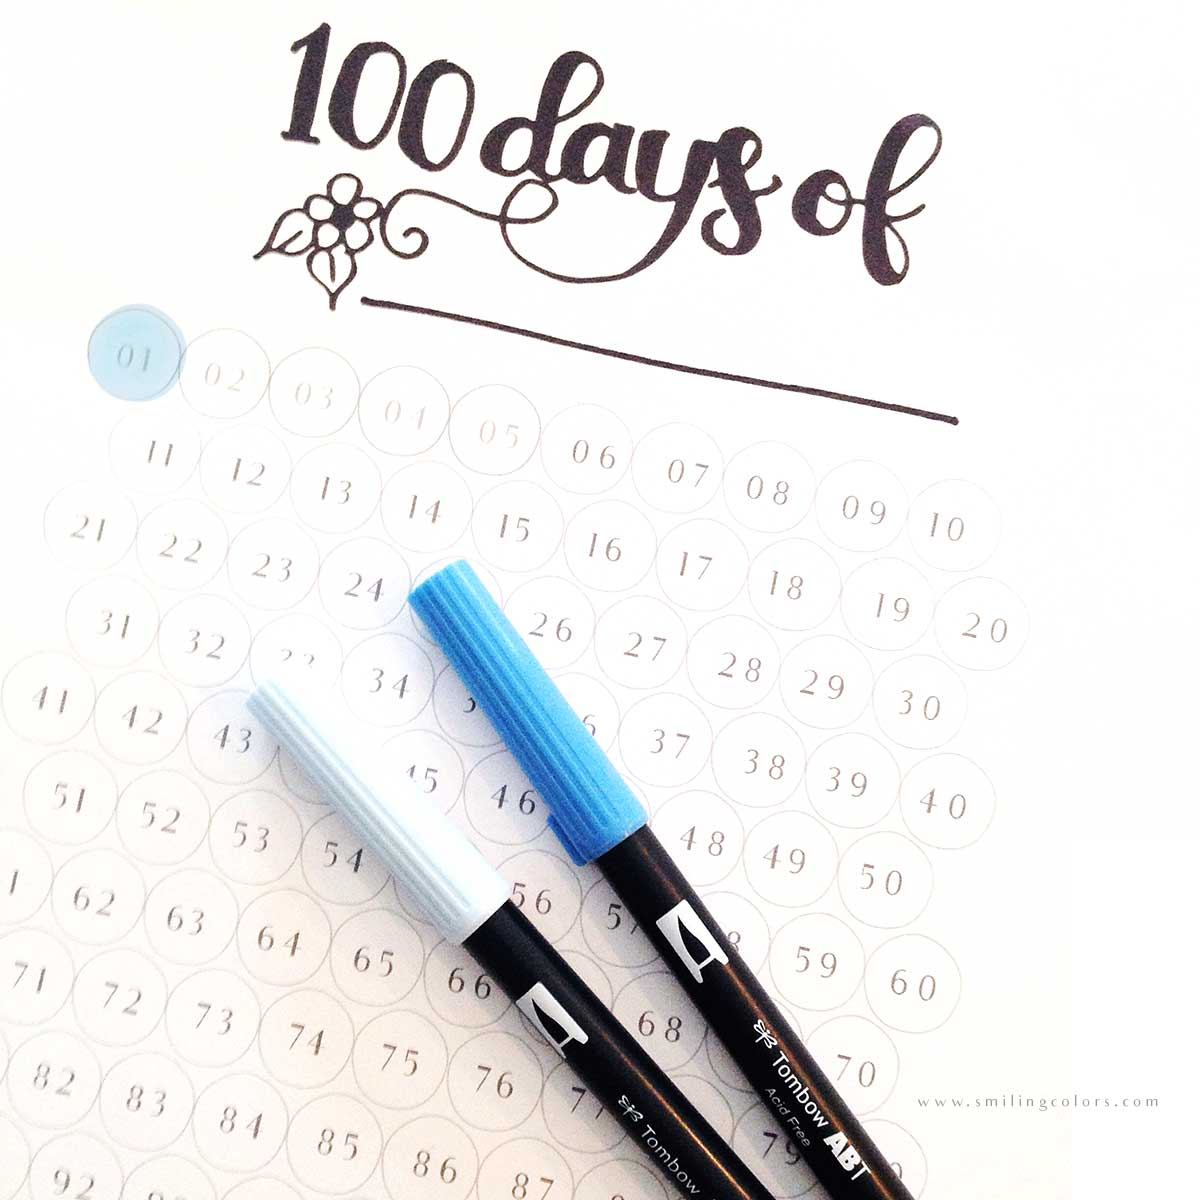 picture about 100 Days Printable named Totally free 100 working day reason monitoring printable, precisely down load and coloration!